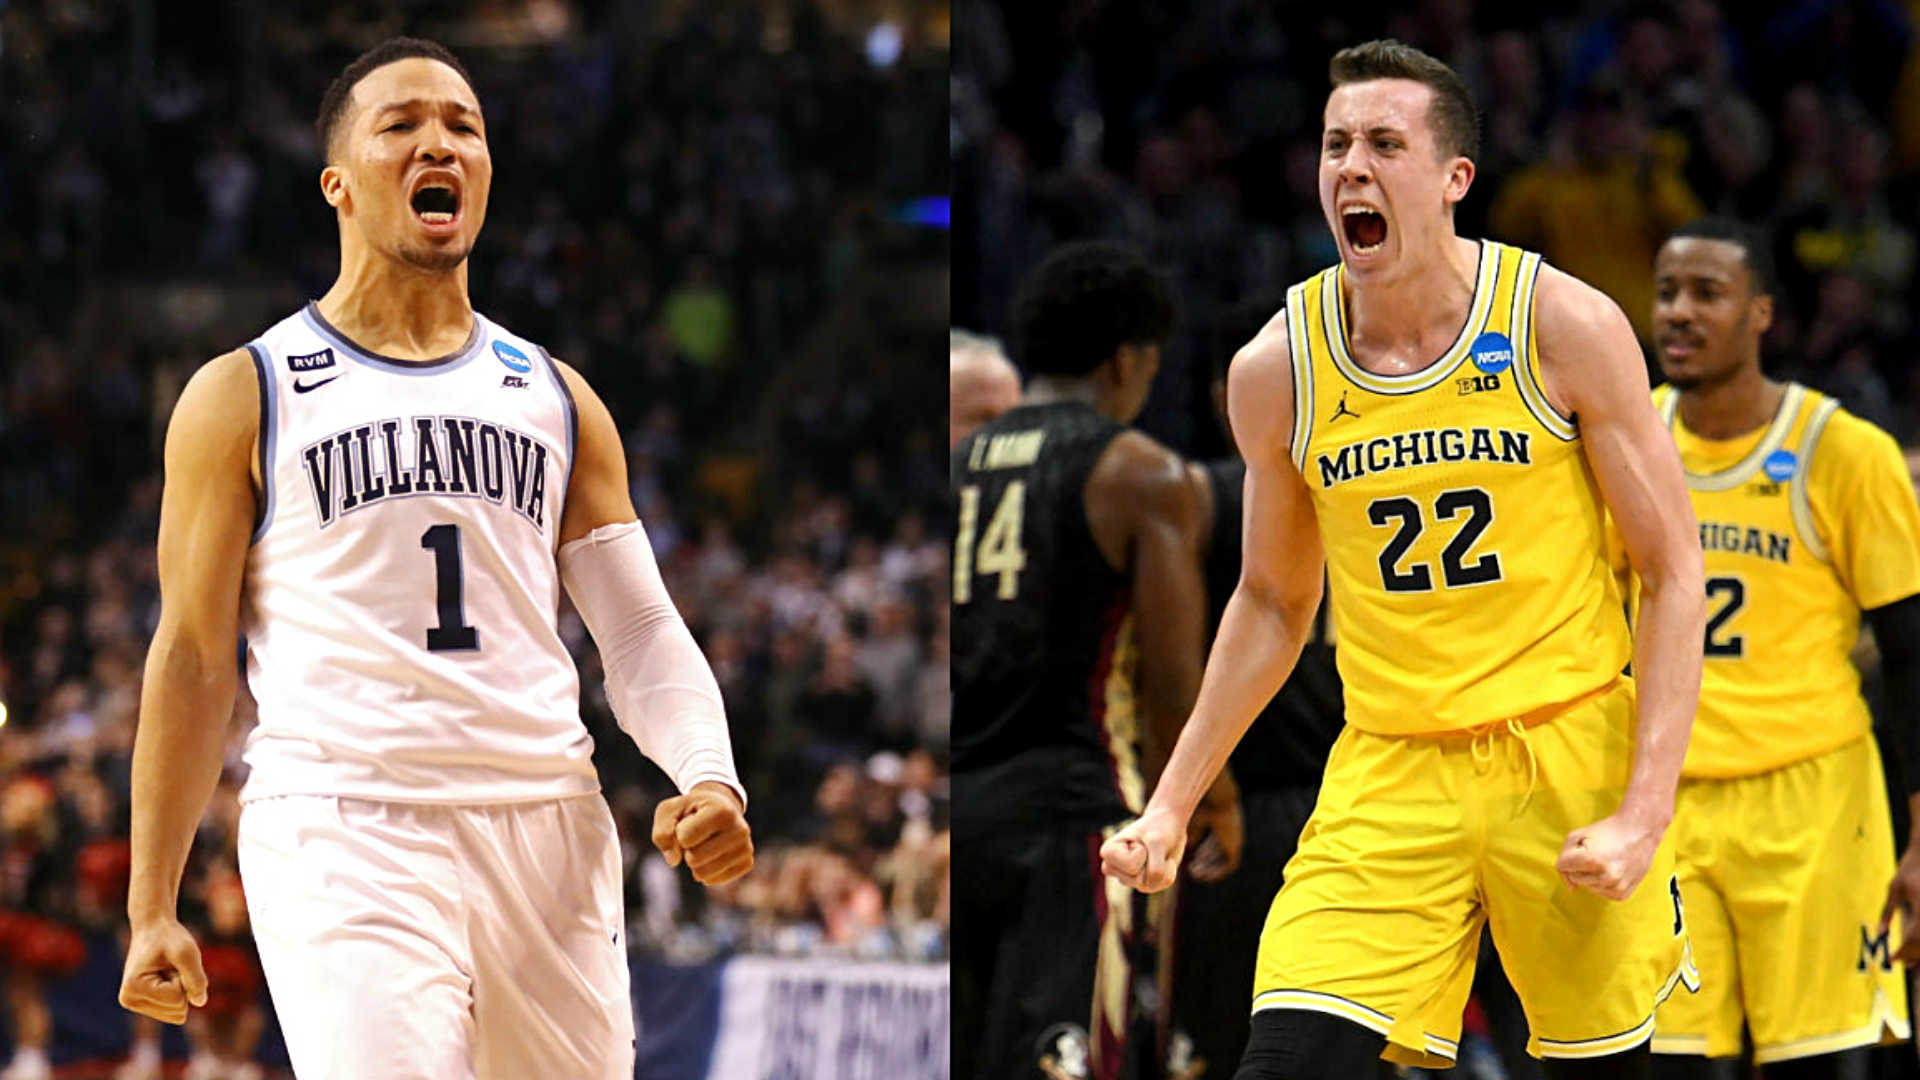 NCAA championship 2018: Highlights, updates from MI vs. Villanova